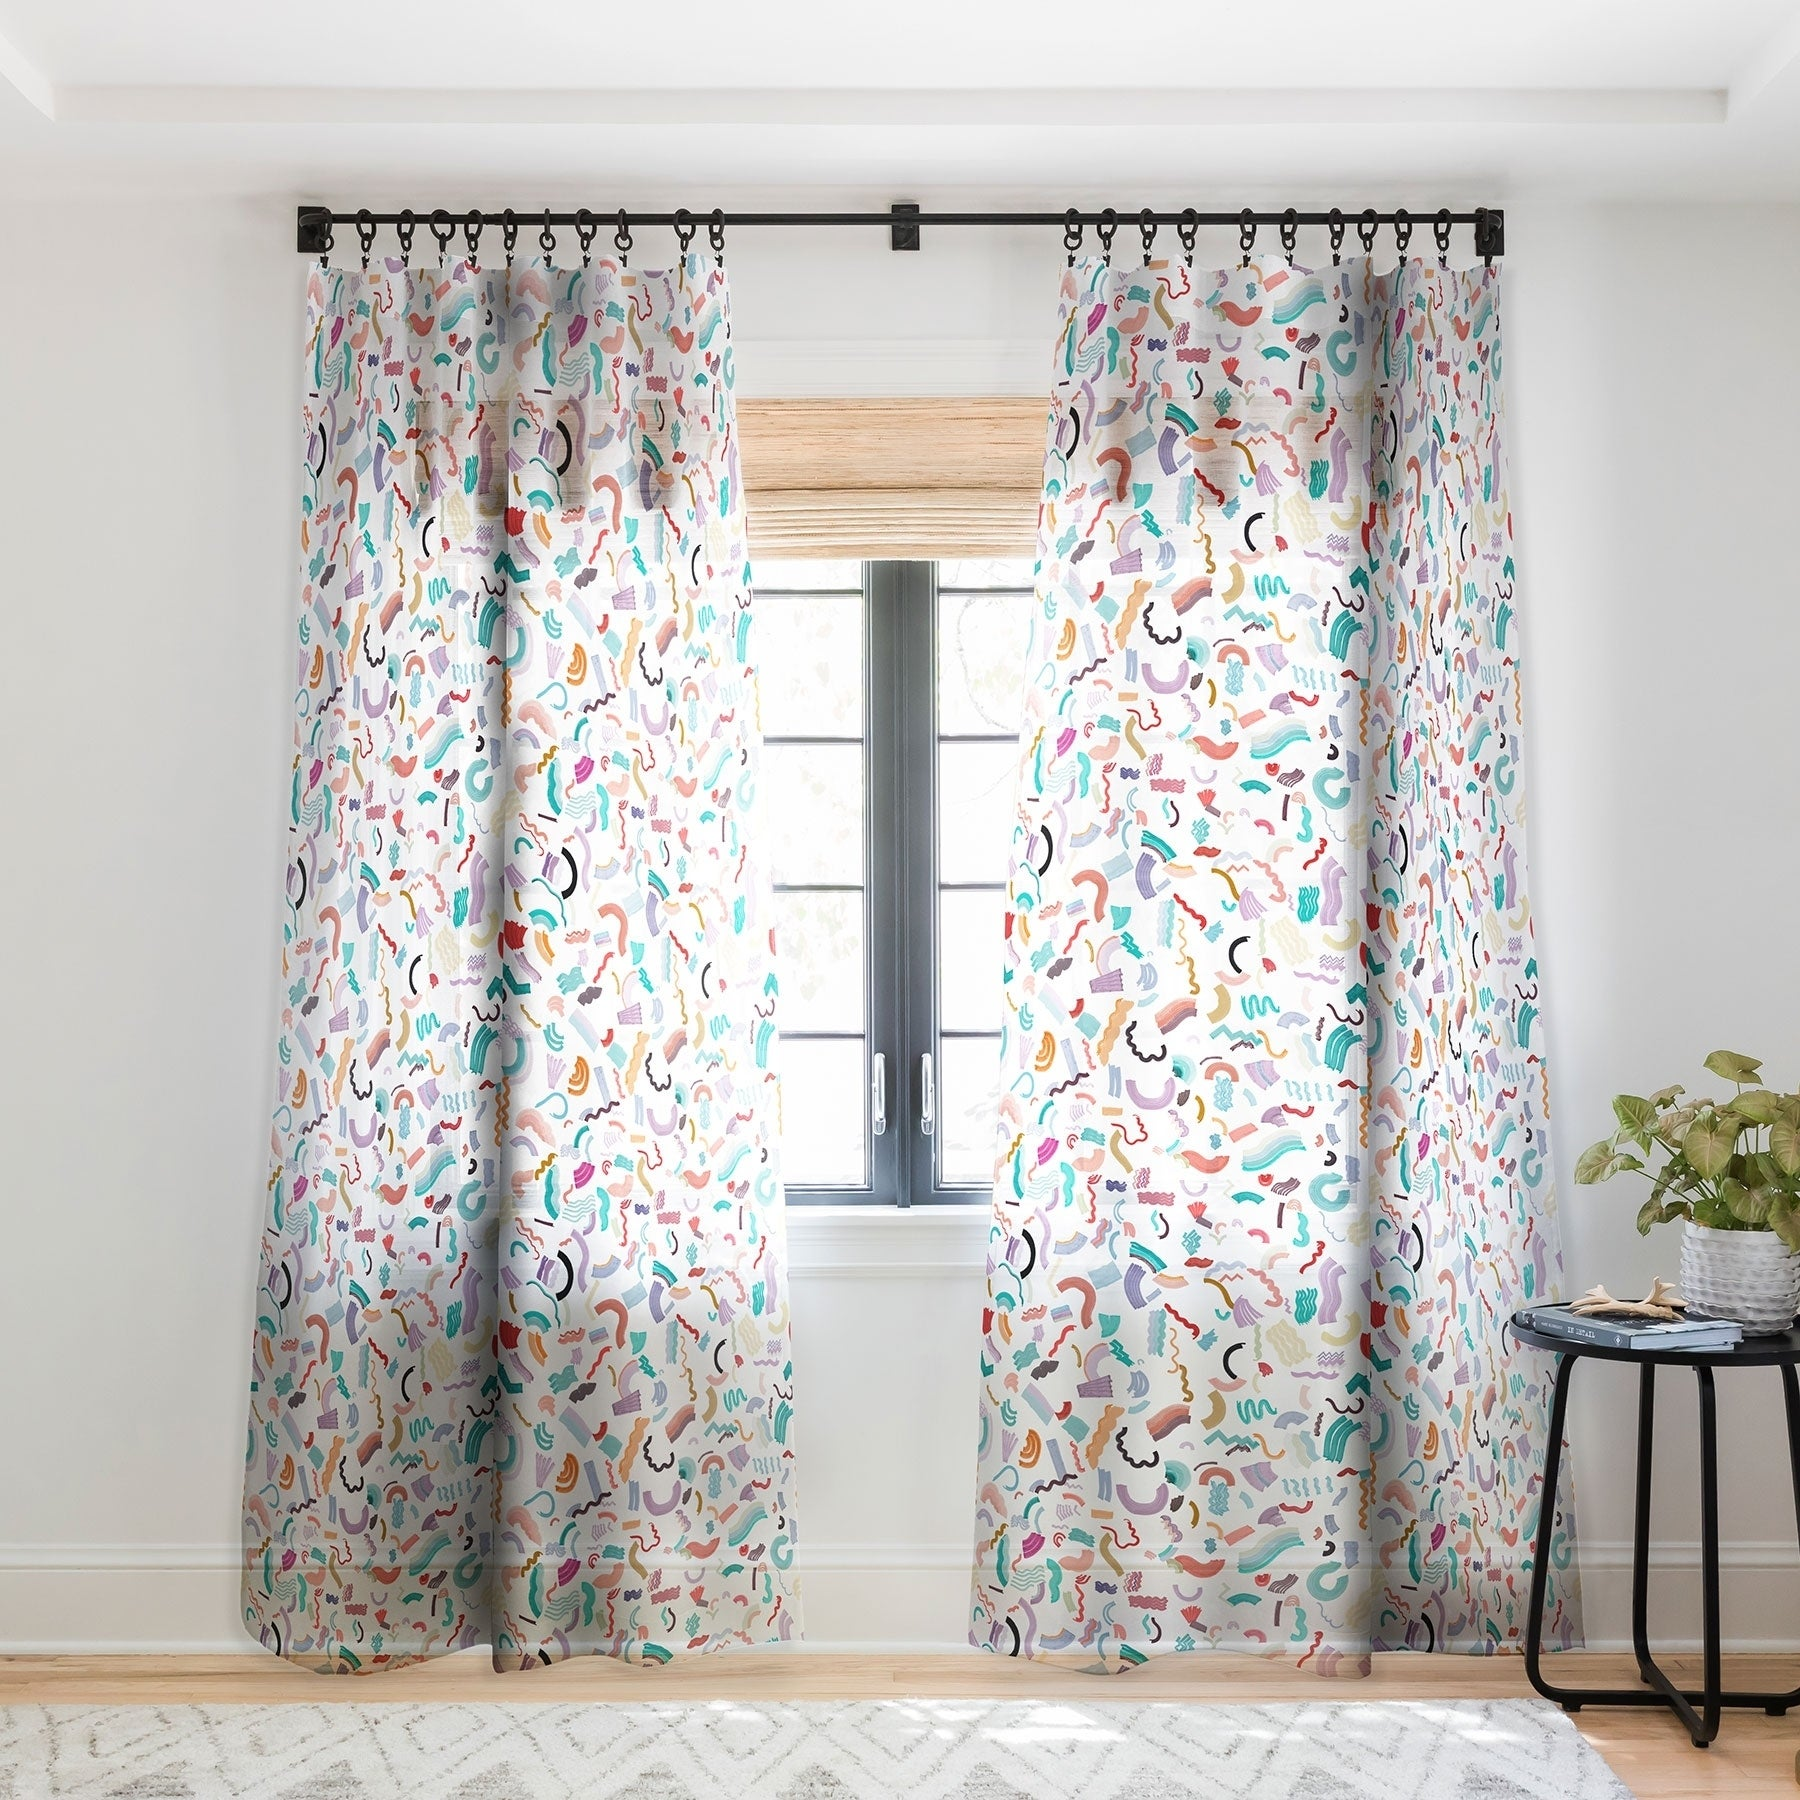 Ninola Design Curly And Zigzag Stripes Marker Drawing Single Panel Sheer Curtain 50 X 84 On Sale Overstock 22044574